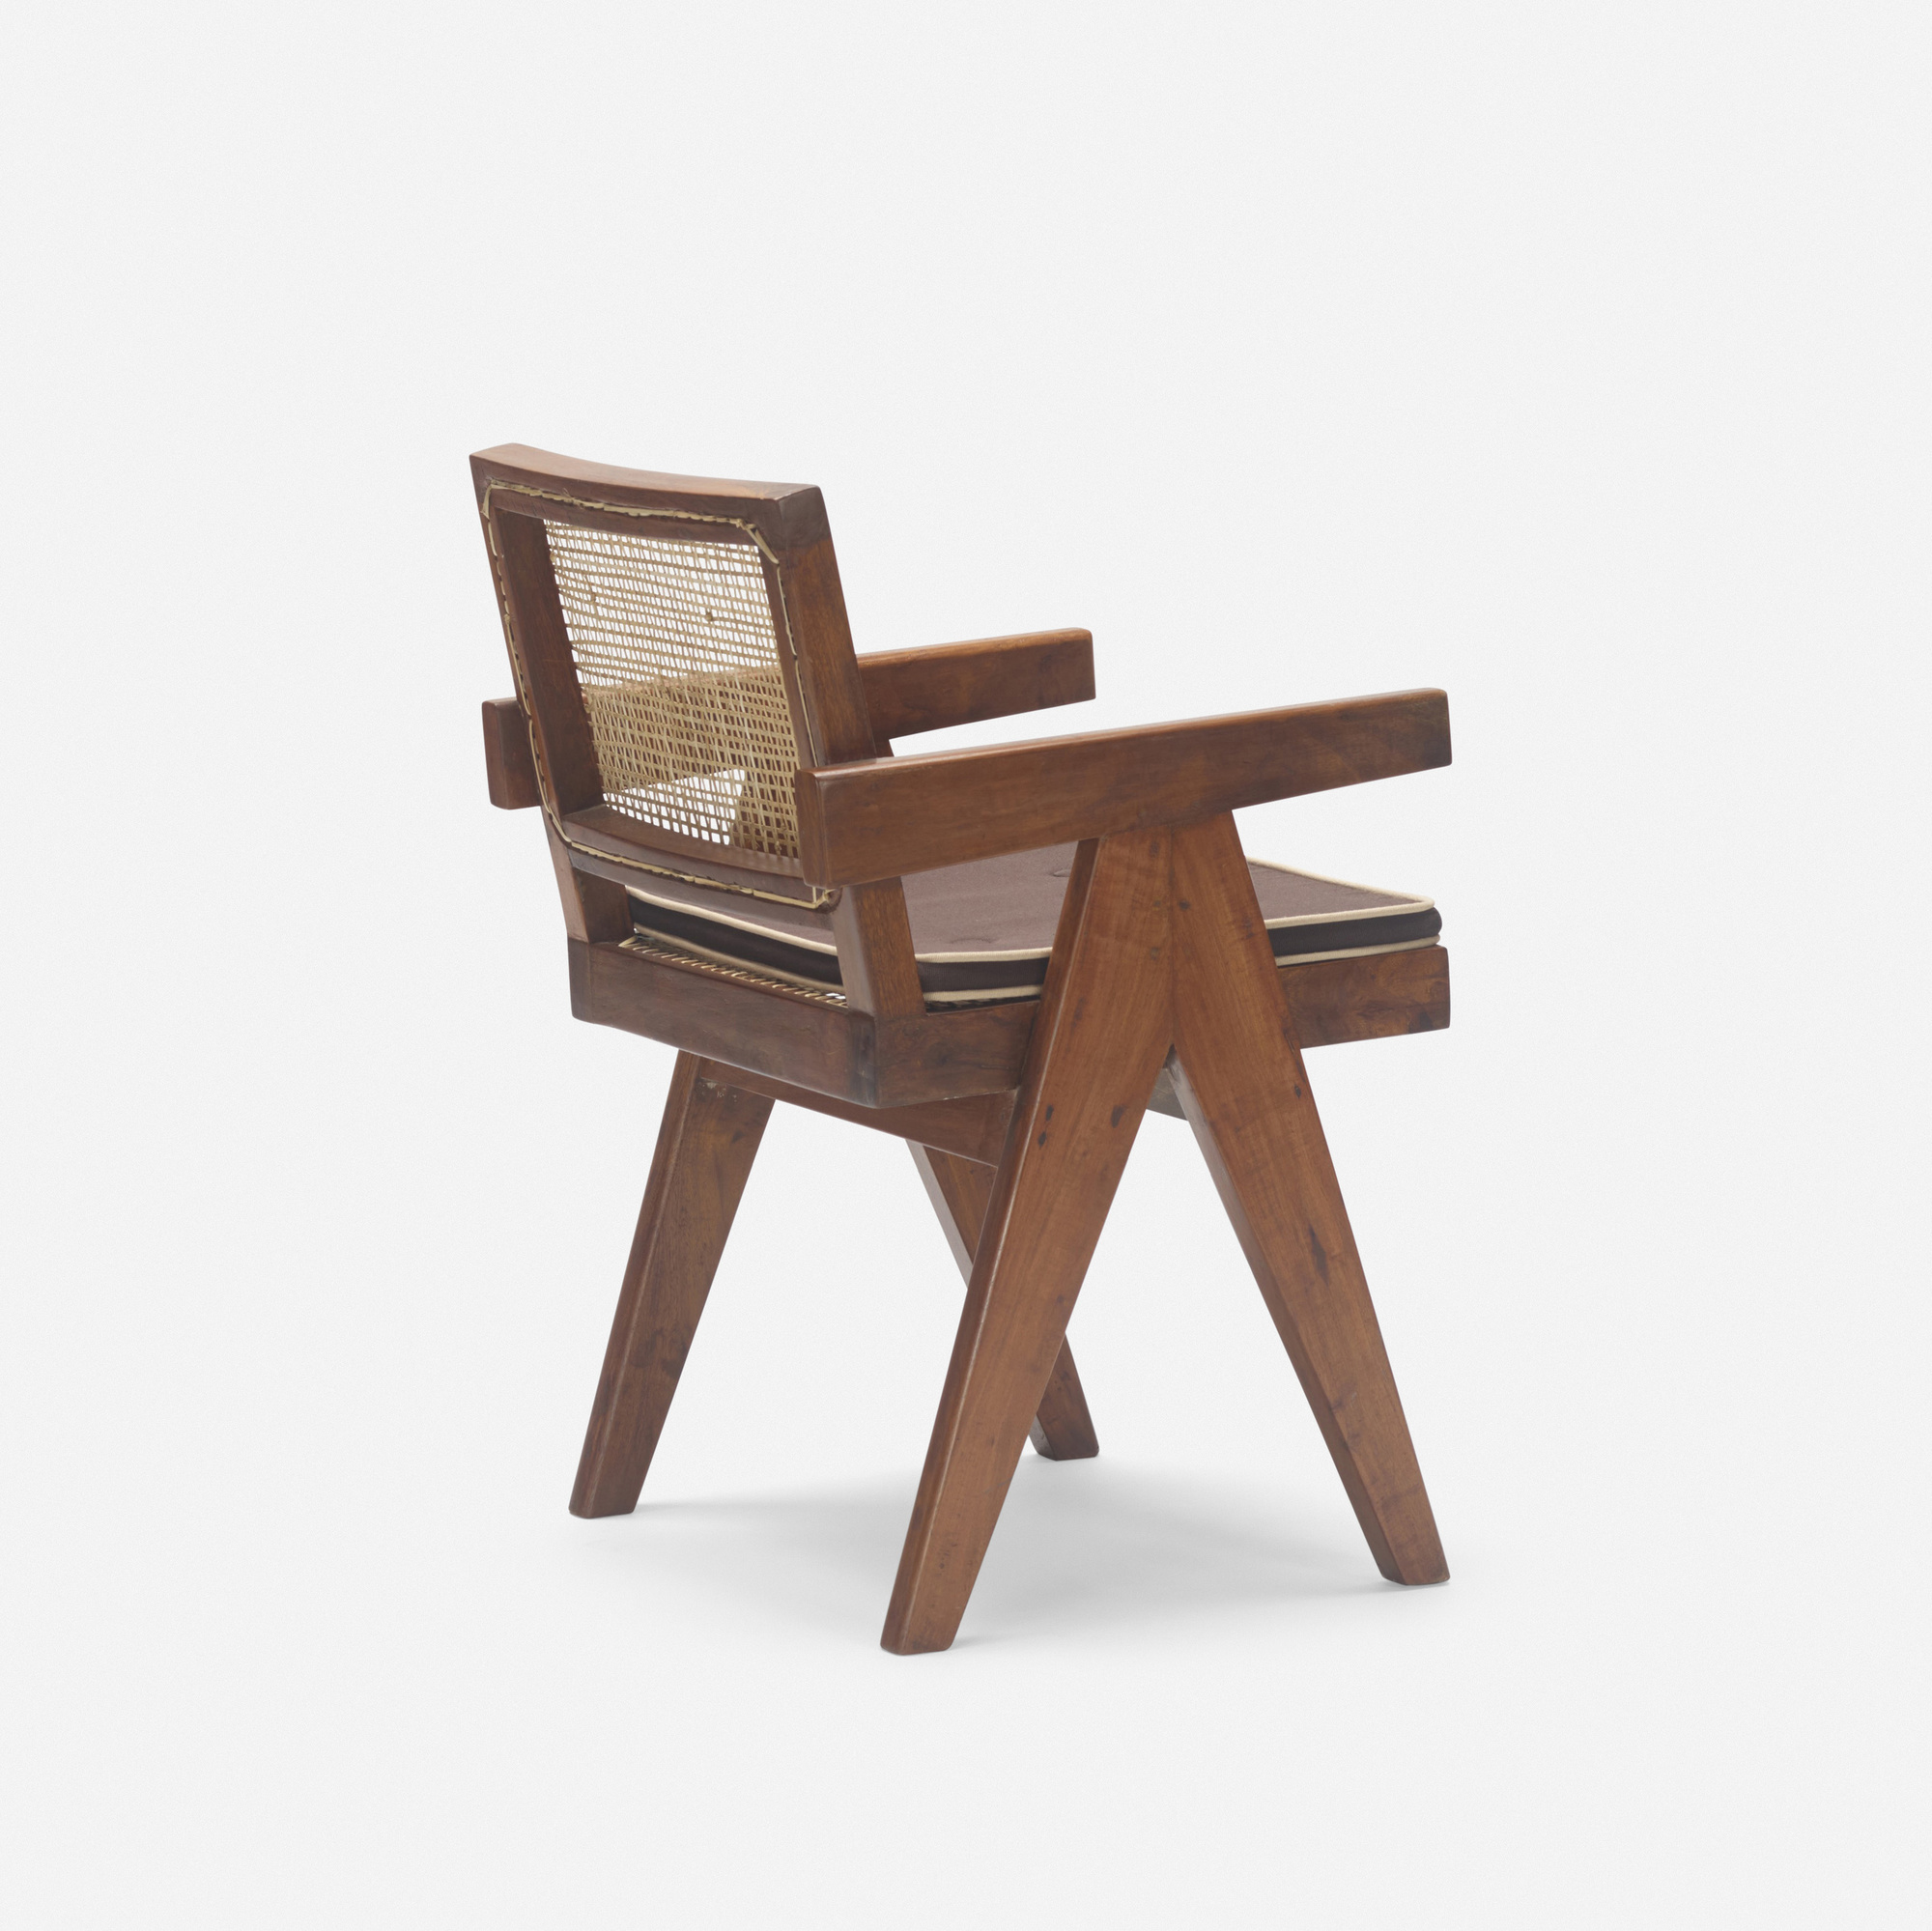 120: Pierre Jeanneret / armchair from Chadigarh (2 of 3)